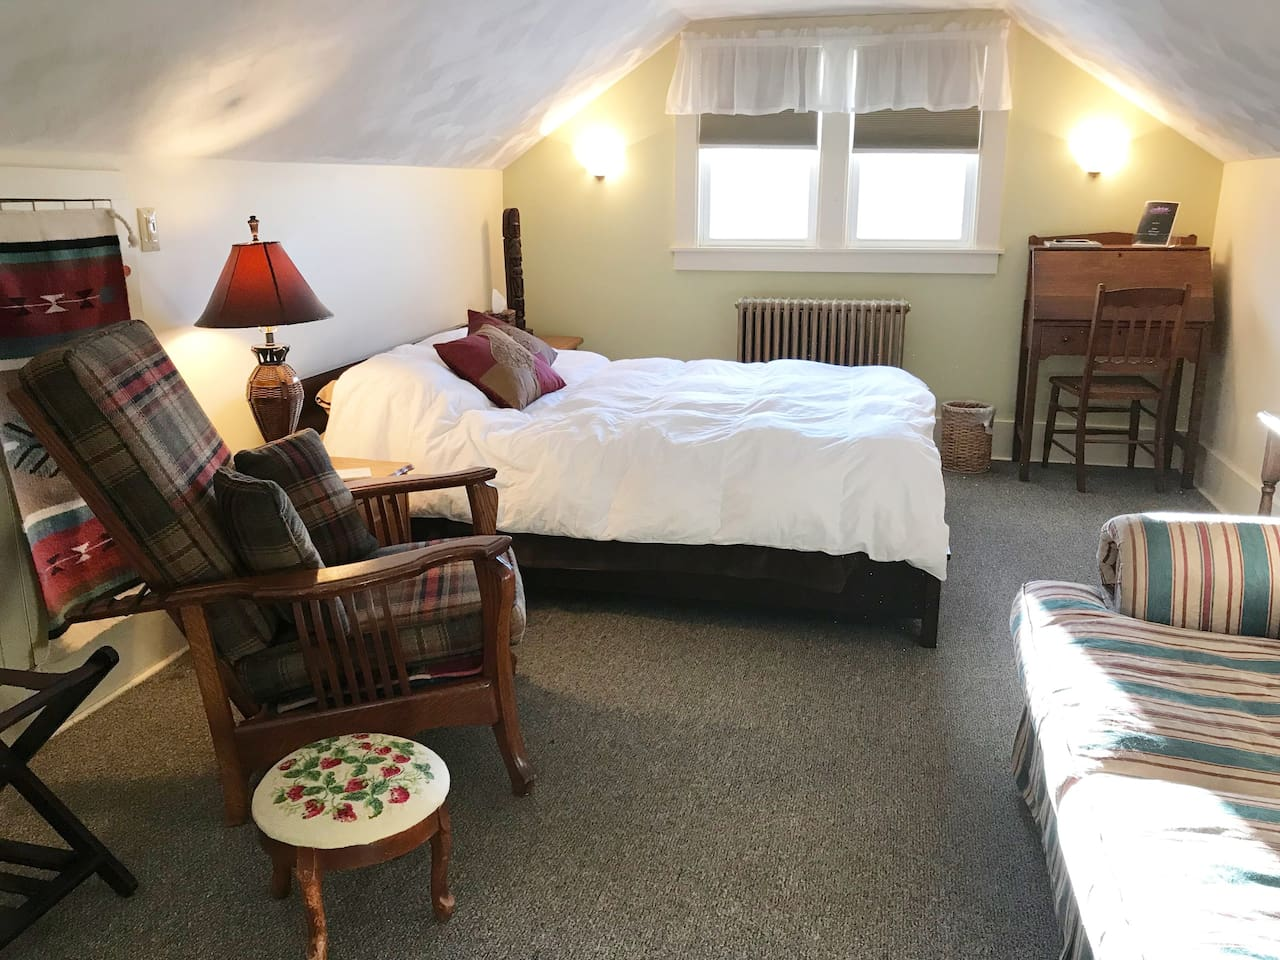 The Nook has slanted ceilings / cozy feel. Most comment how comfortable the room and queen bed  is.  Linens, blanket and warm down alternative quilt in colder months.  Additional pillows and blanket in the closet. A/C in warmer months.